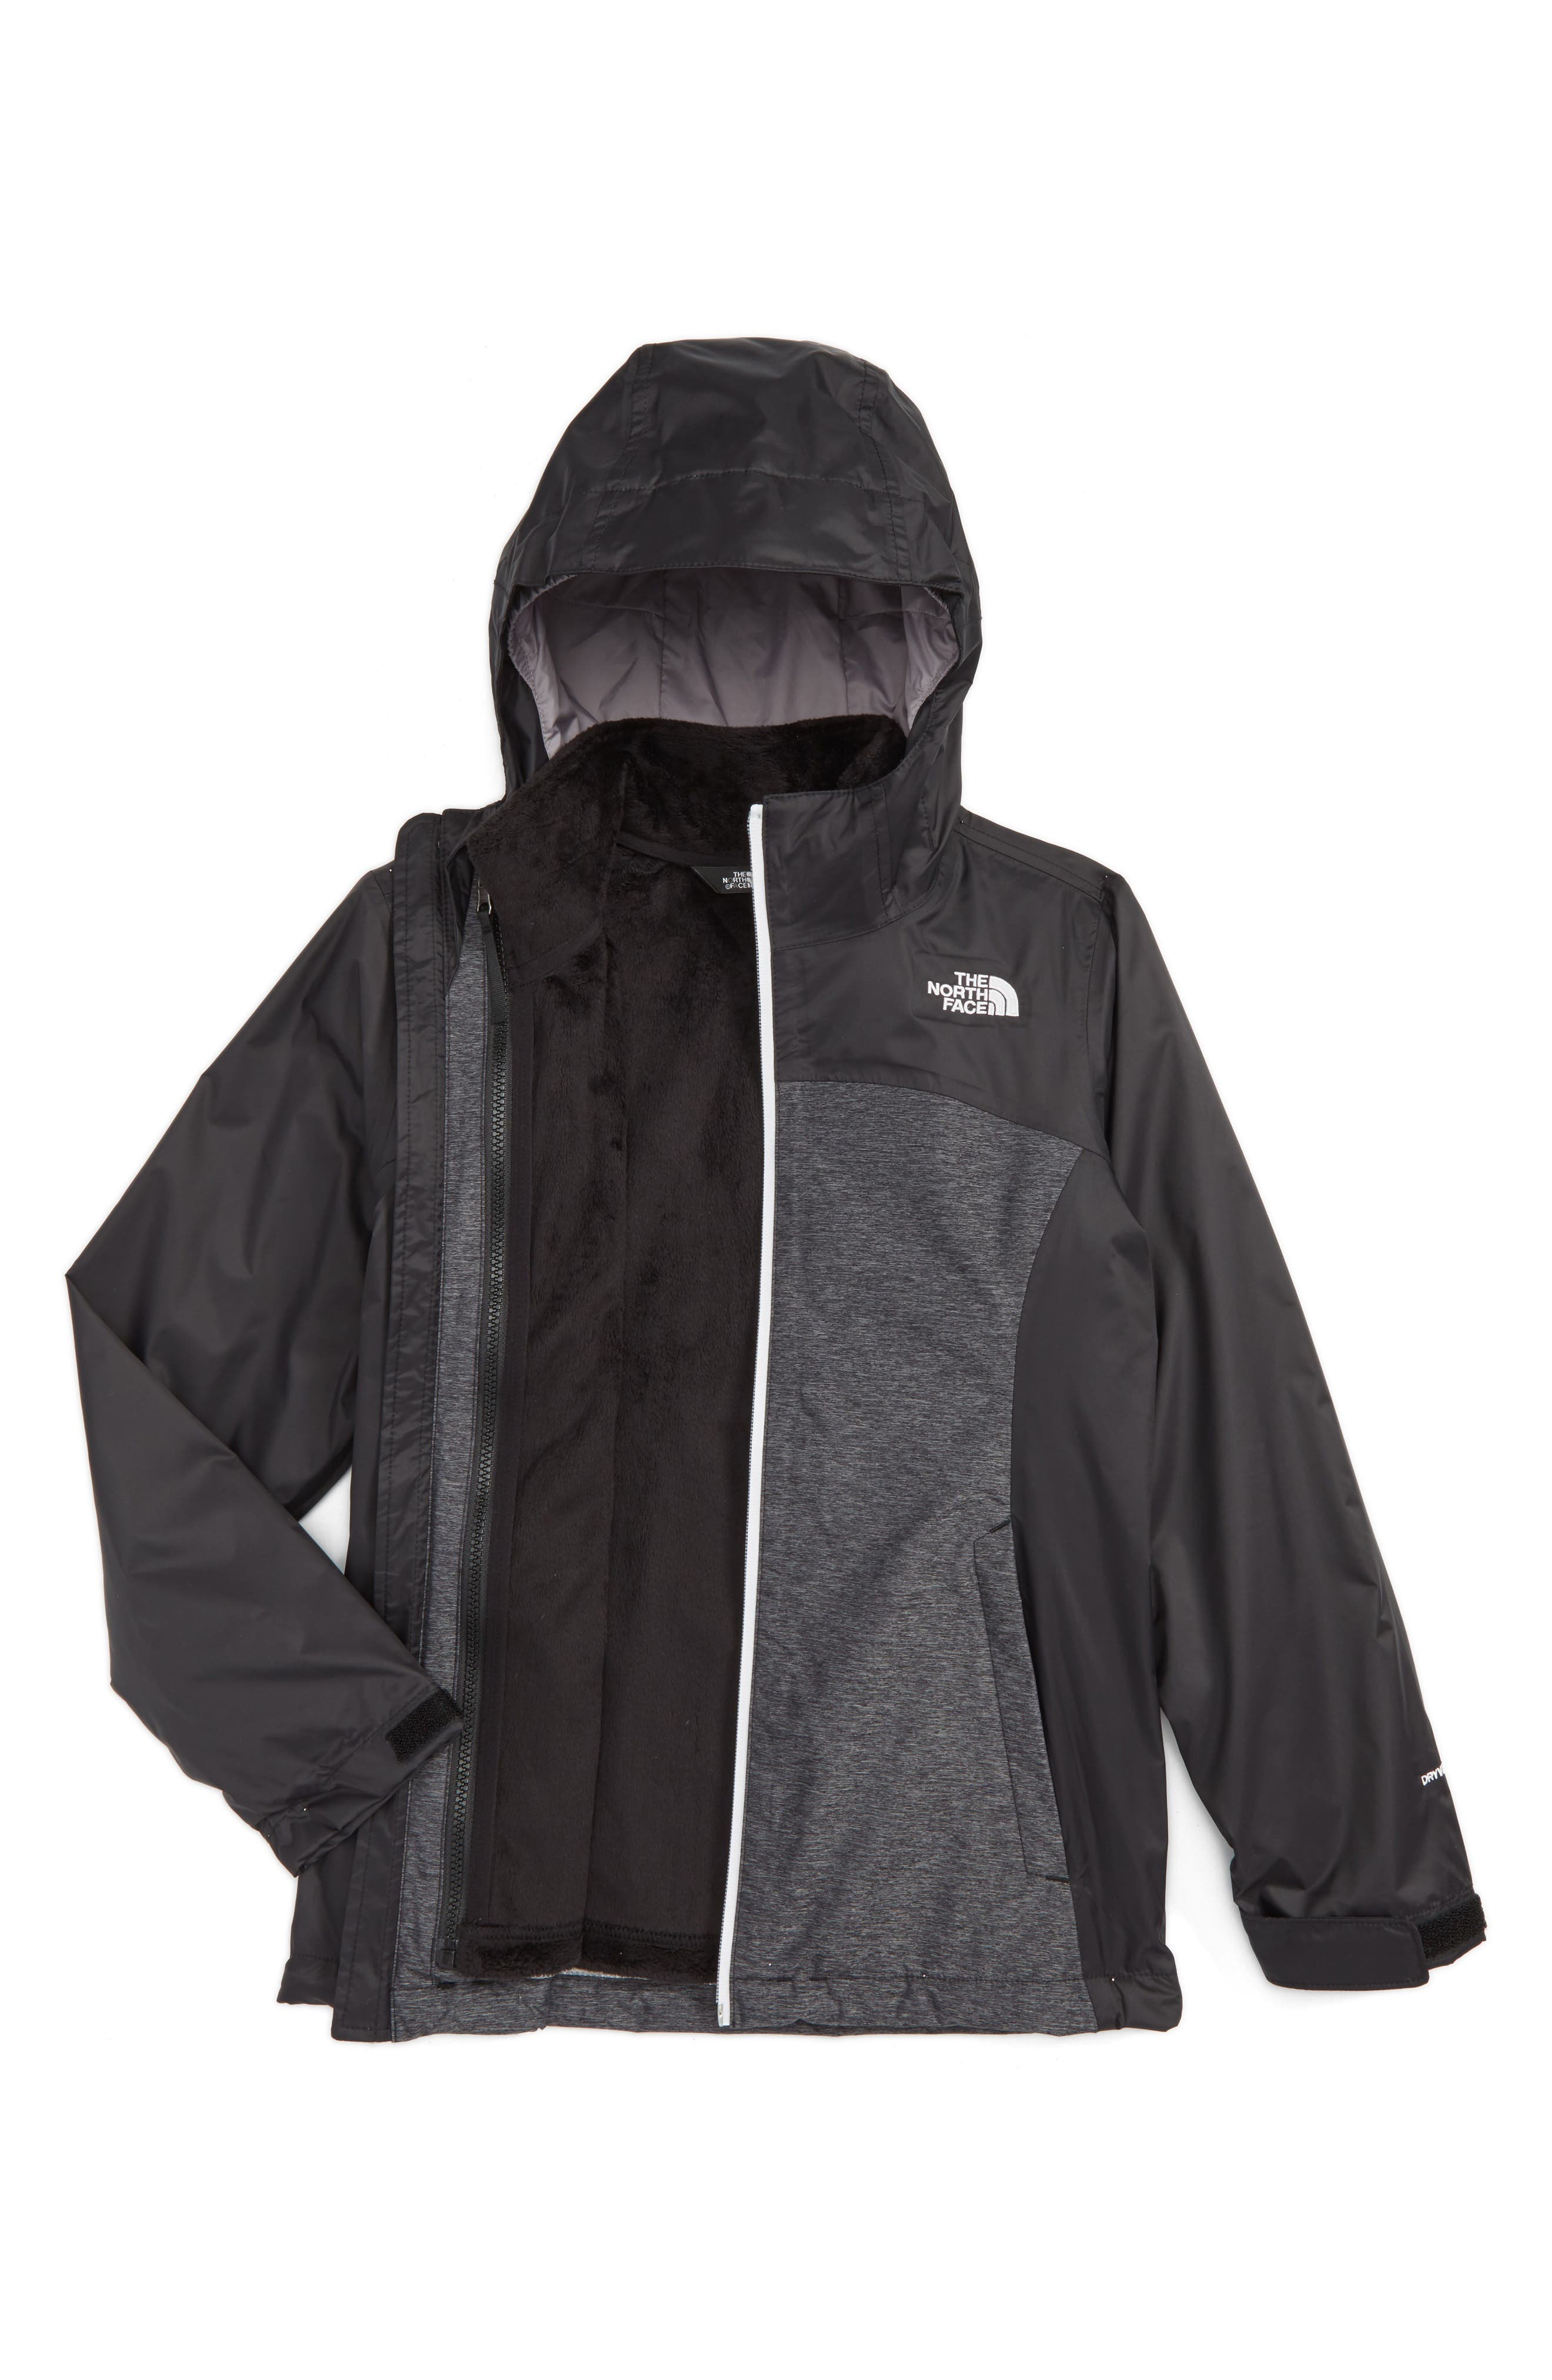 Osolita TriClimate<sup>®</sup> Waterproof 3-in-1 Jacket,                         Main,                         color, Tnf Black